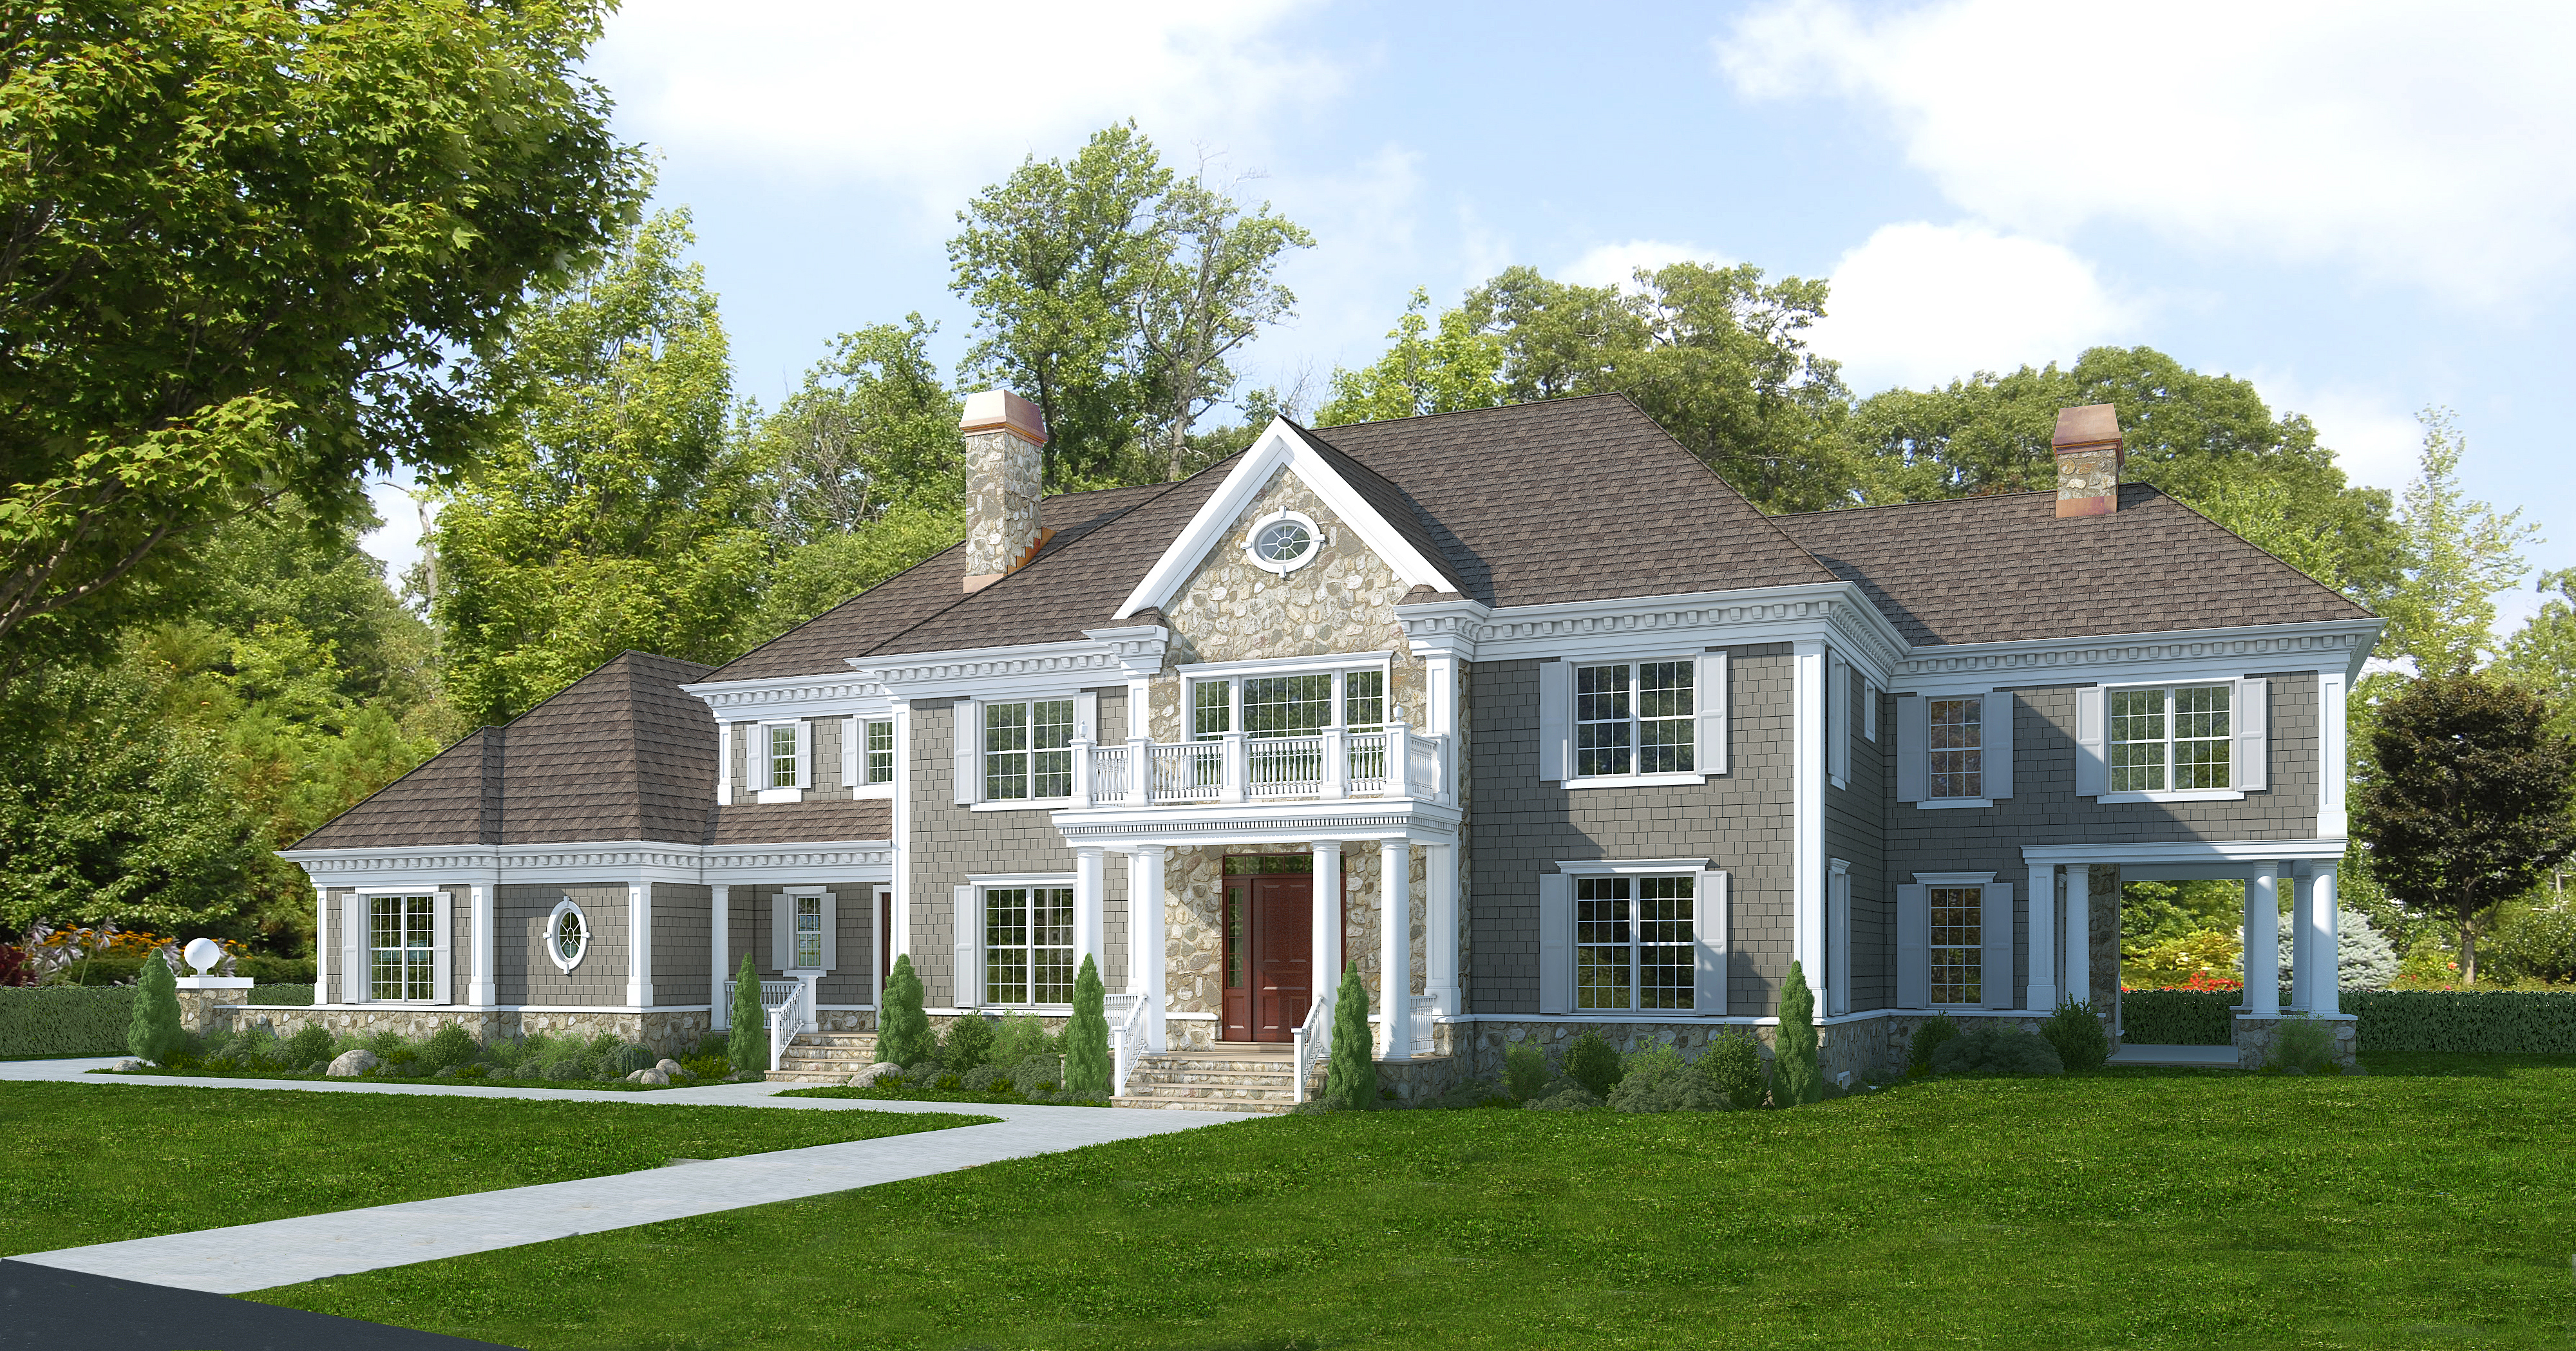 Single Family Home for Sale at 14 Rockledge Road Rye, New York 10580 United States